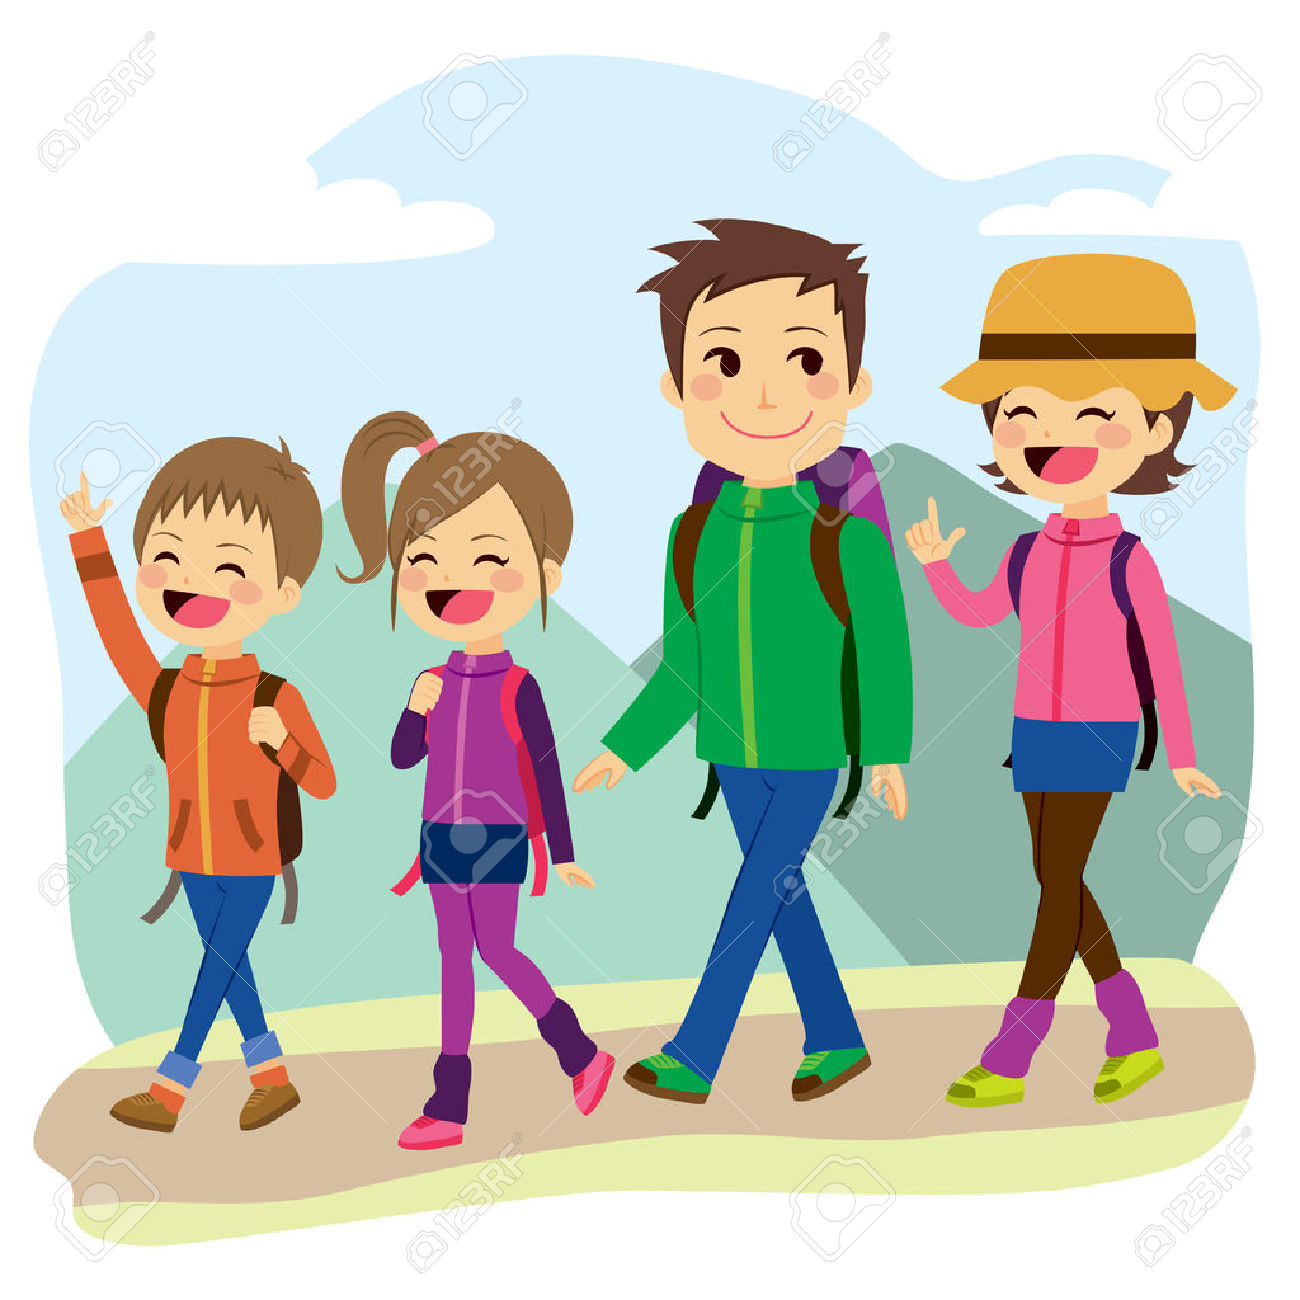 Hiking free download best. Hiker clipart family hike